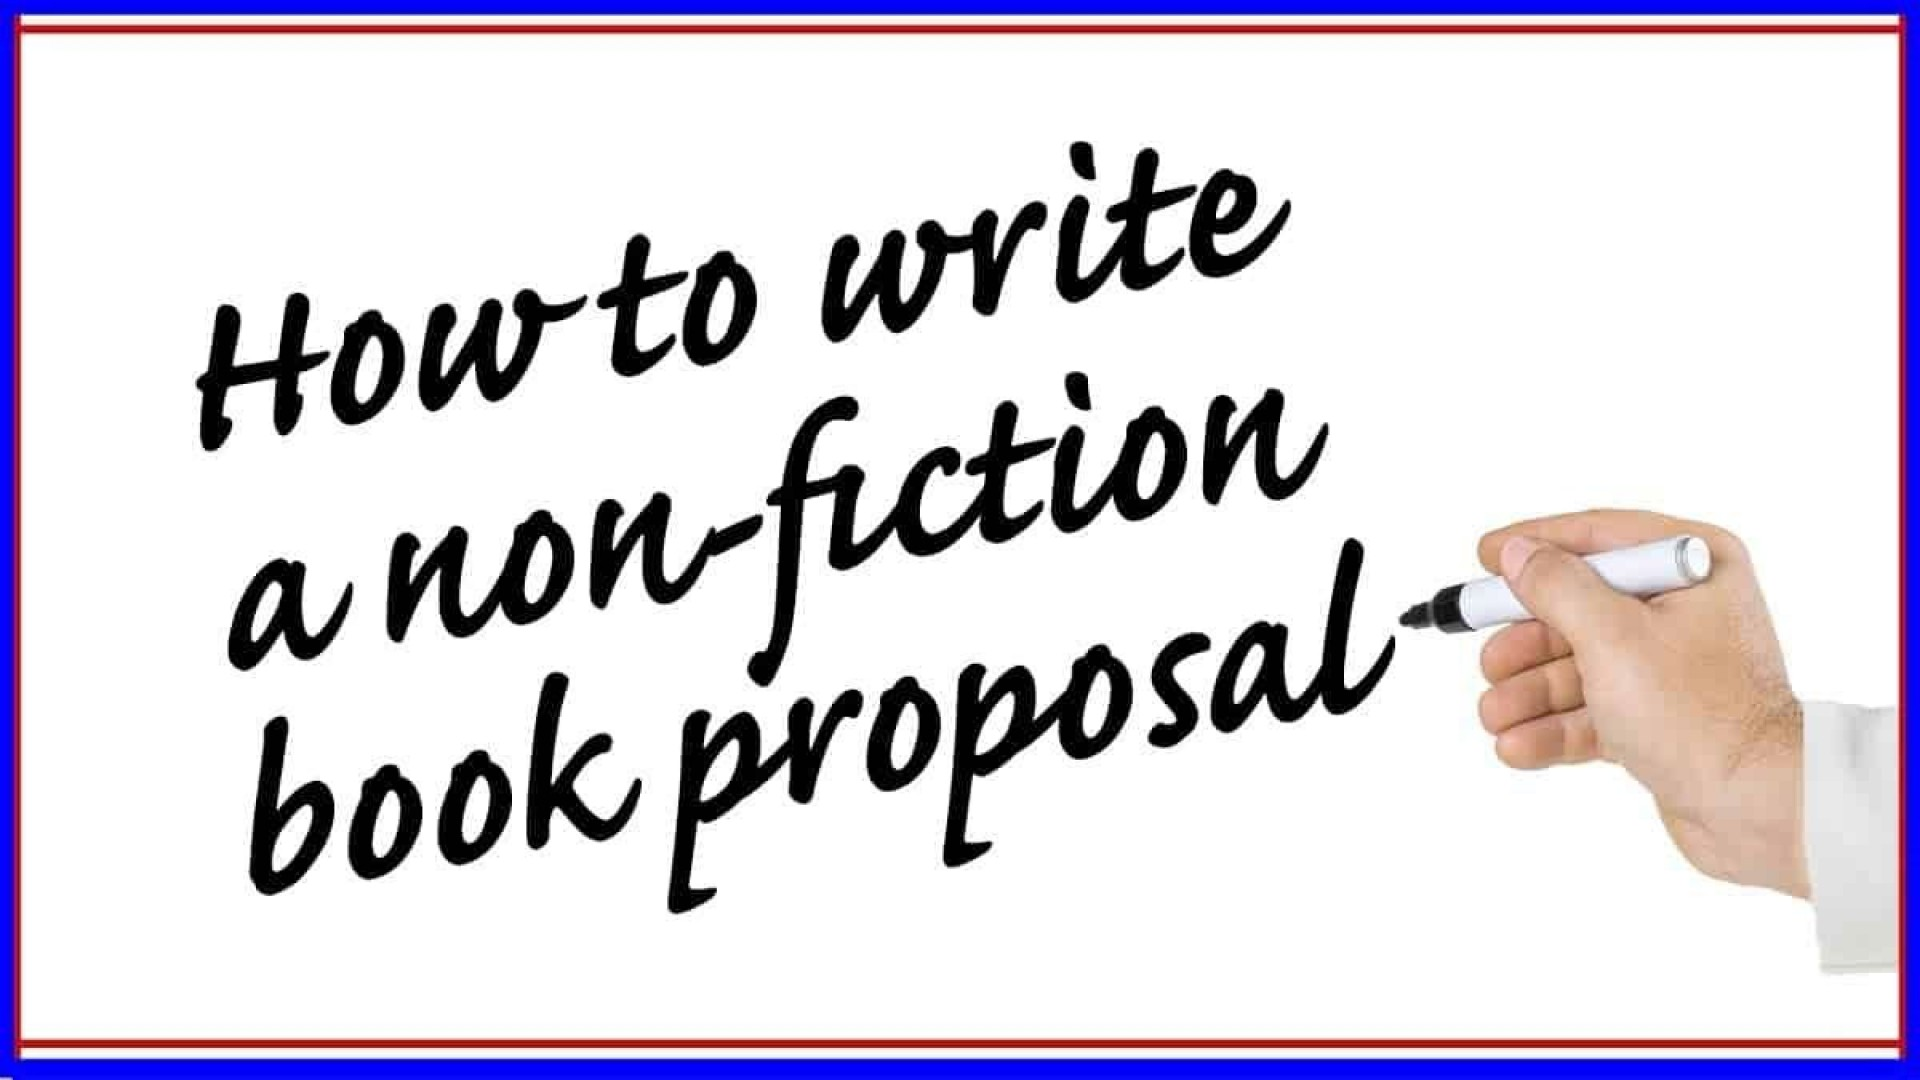 006 Breathtaking Nonfiction Book Proposal Template Example 1920